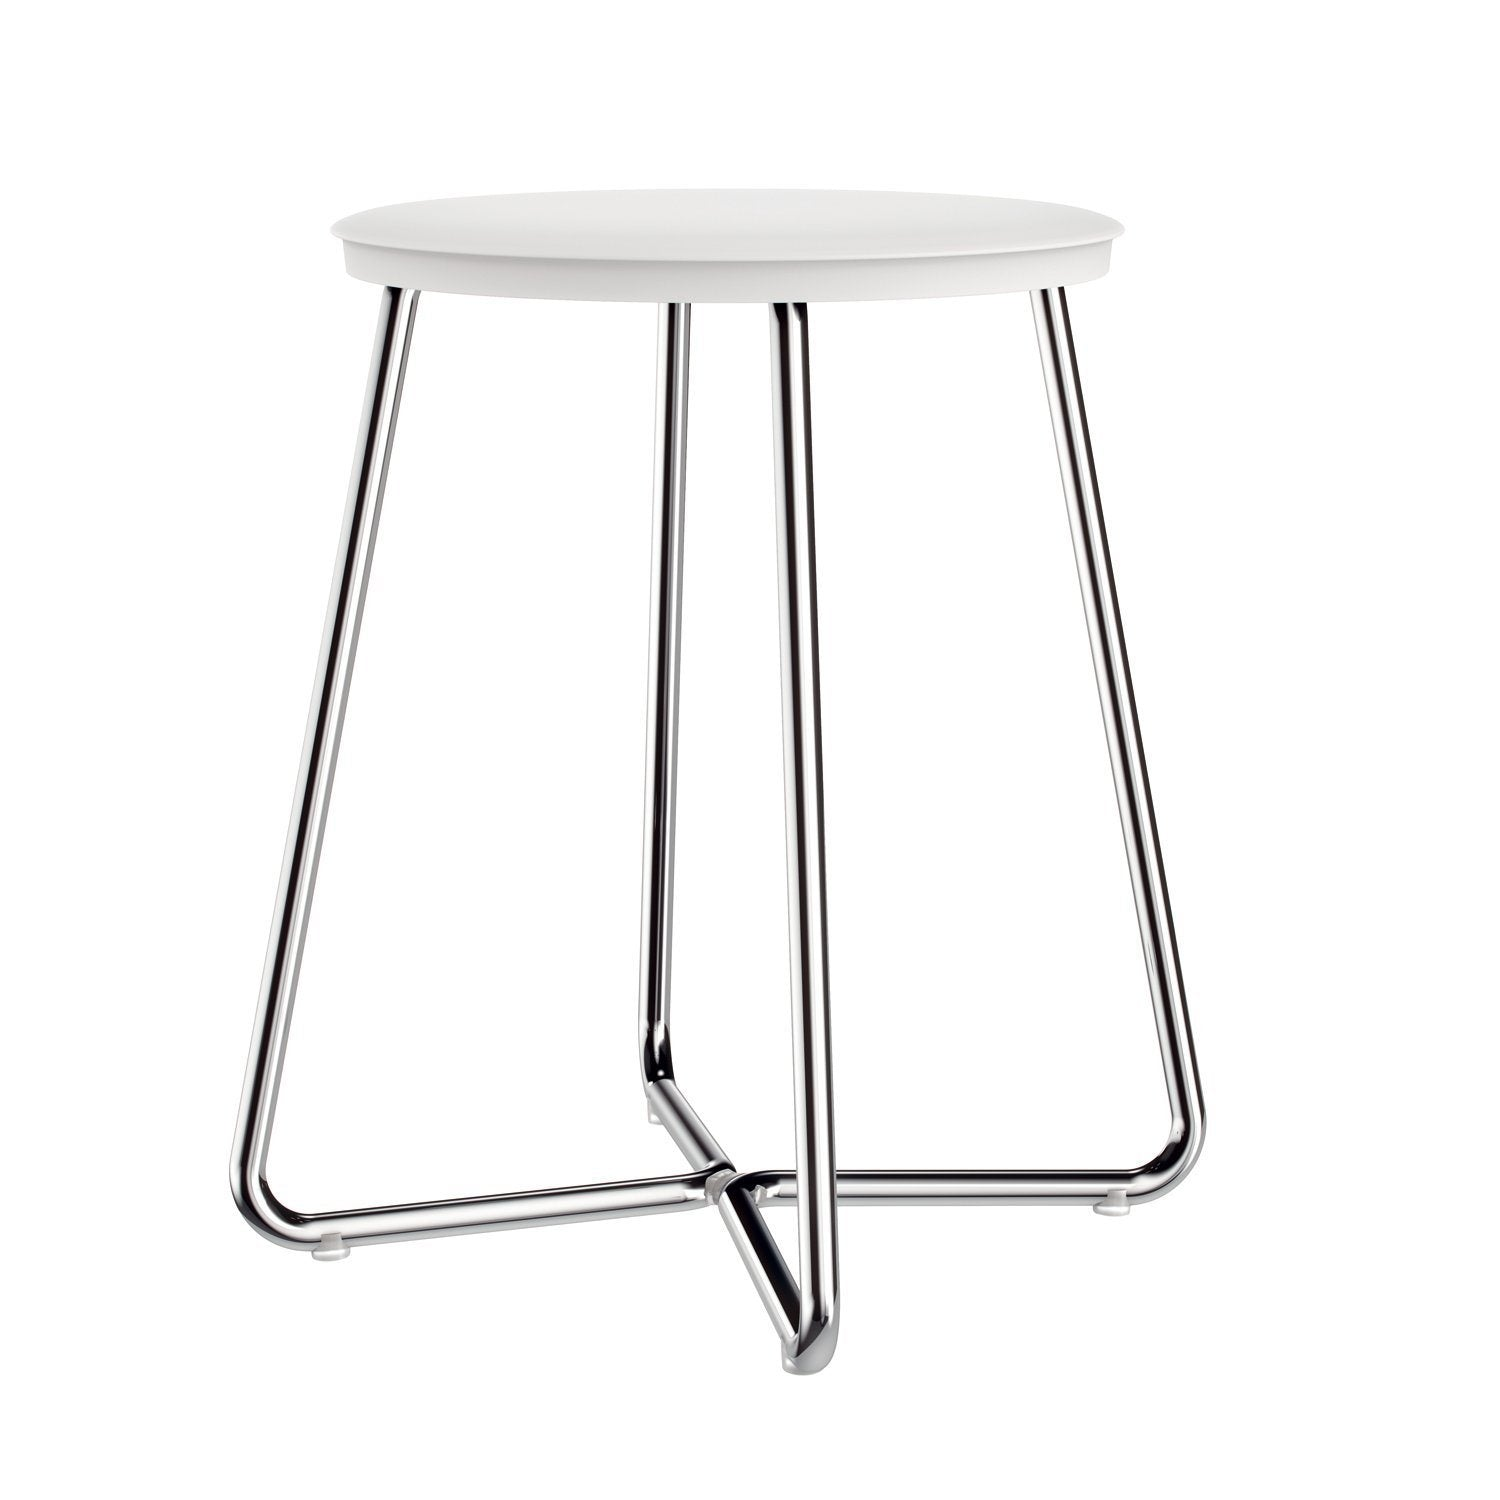 Sku 290 65 06 Item Brand Industrias Cosmic S A U Archie Backless Vanity Stool Bench For Bath Bedroom With Chrome Steel Legs Vanity Stools And Benches Cosmic Black White 200 00 250 00 Floor Standing Stainless Steel